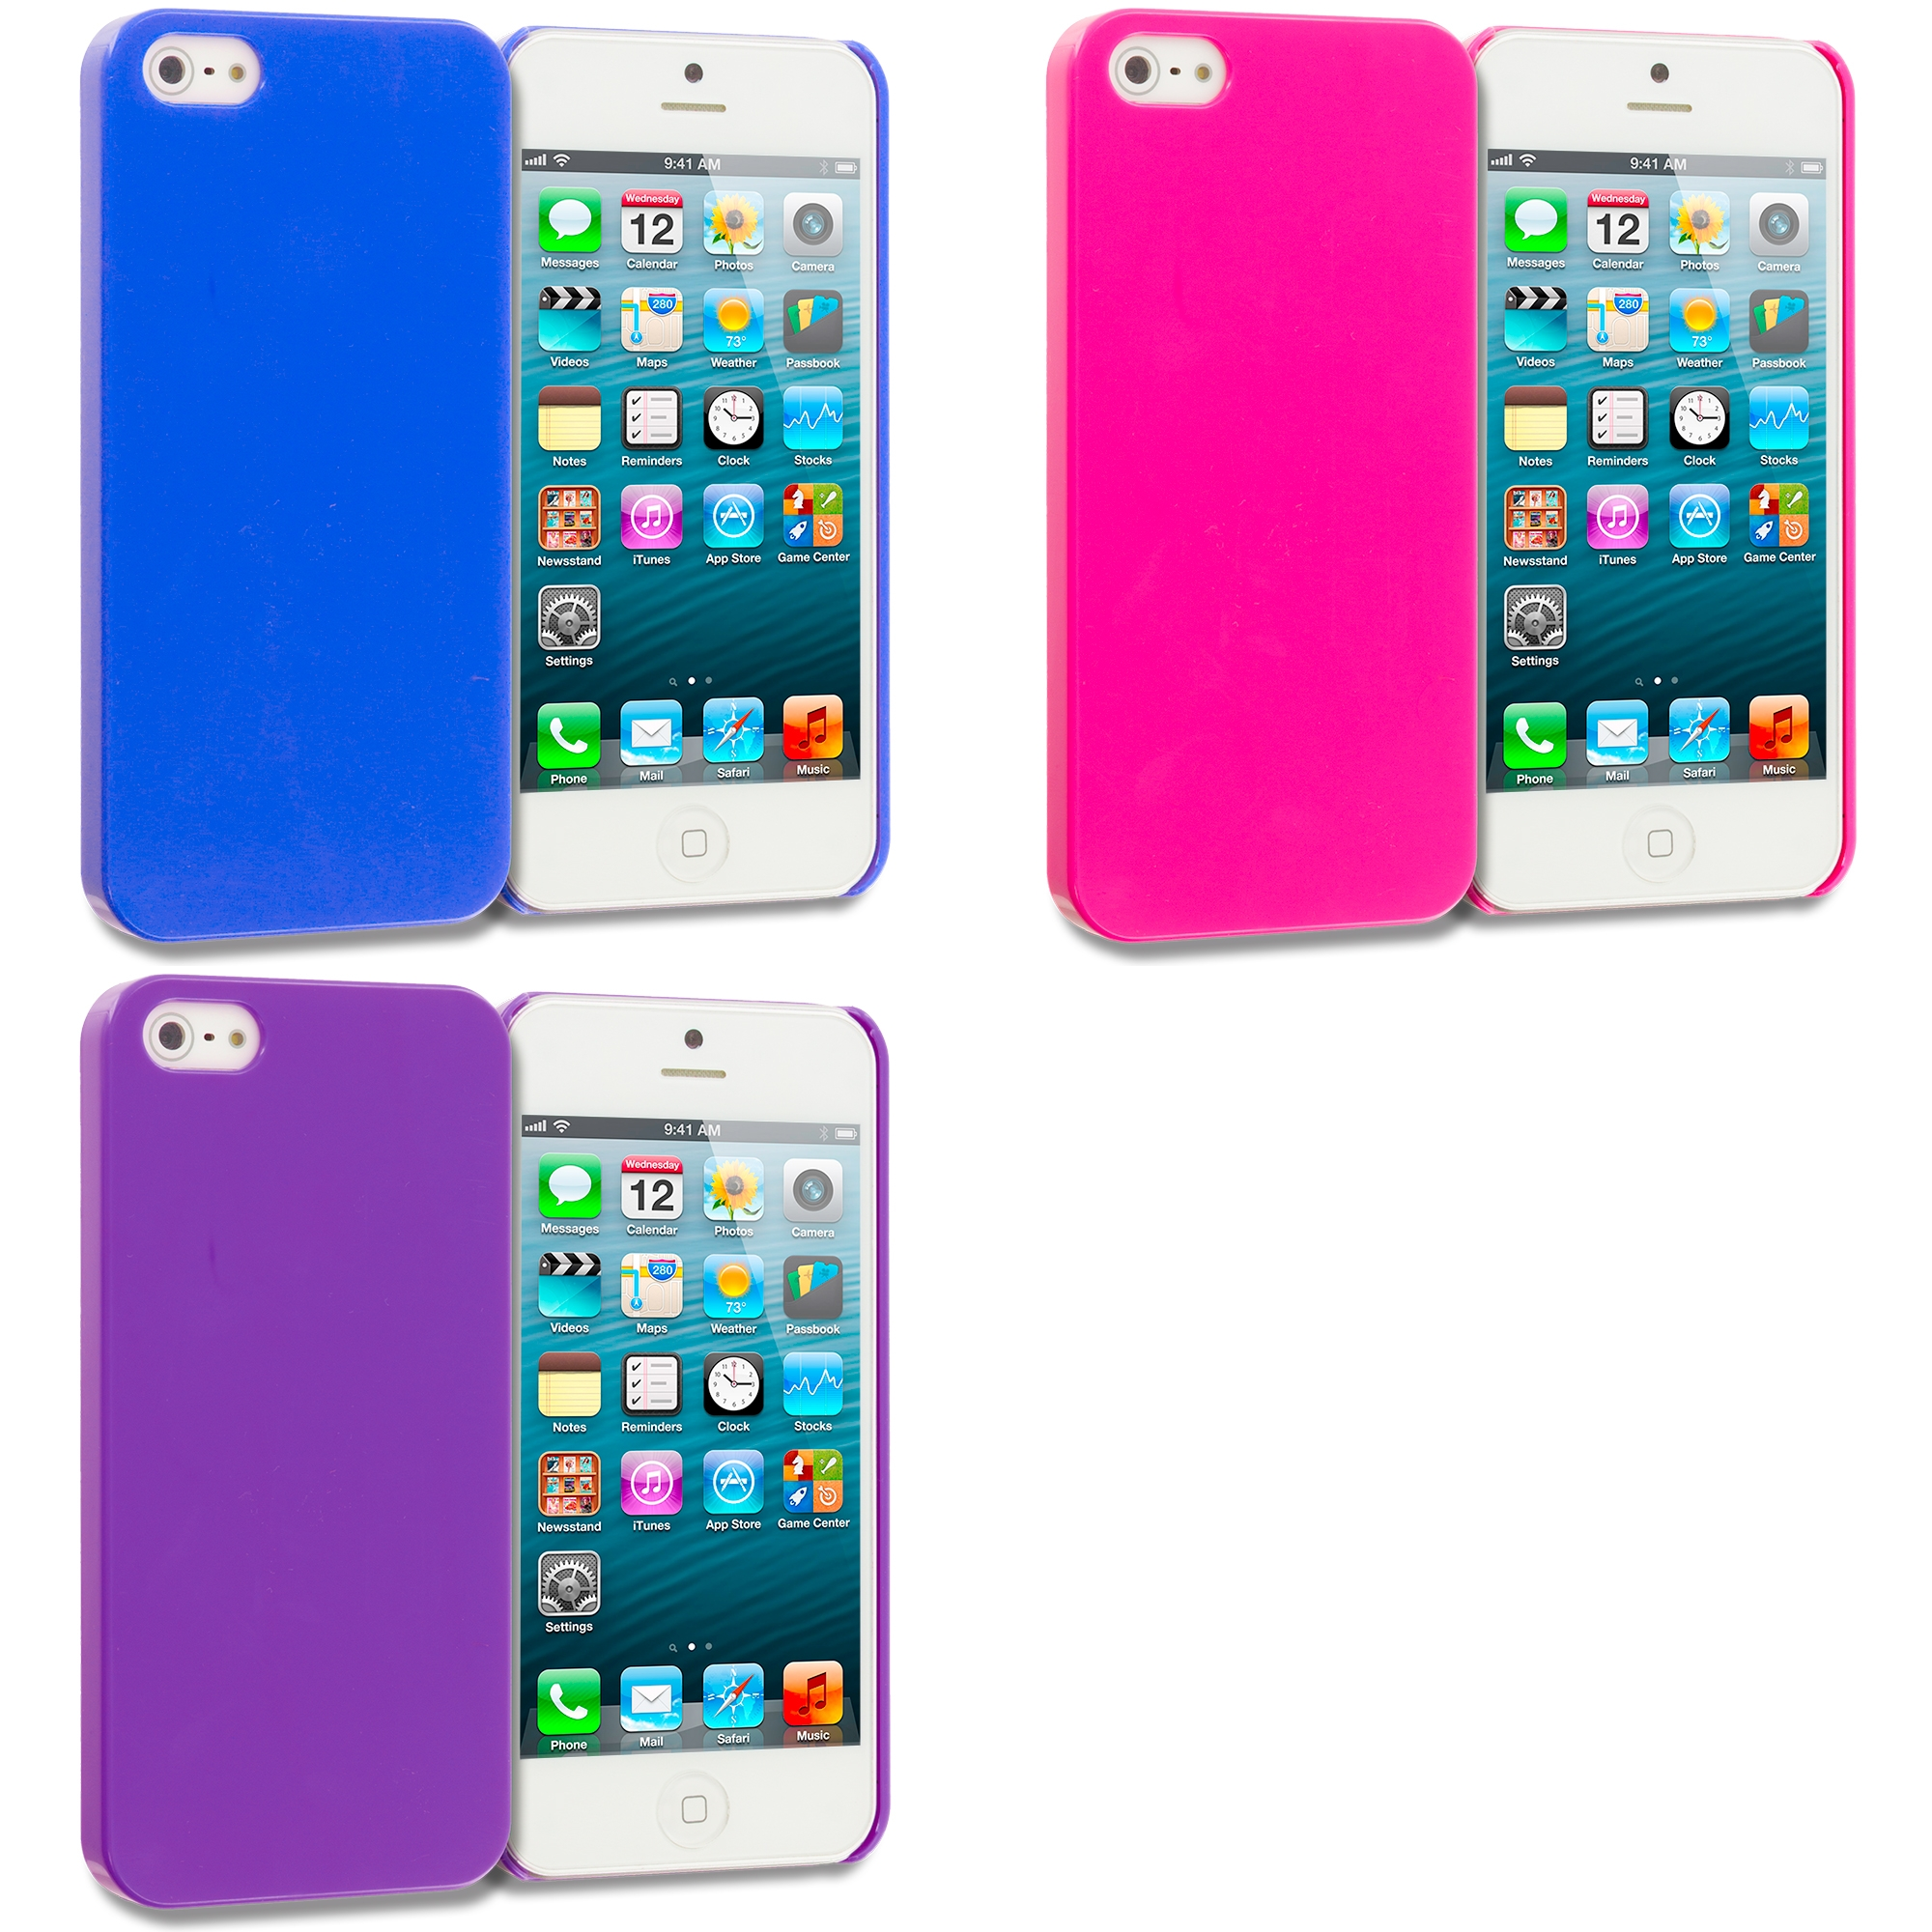 Apple iPhone 5/5S/SE Combo Pack : Blue Solid Crystal Hard Back Cover Case